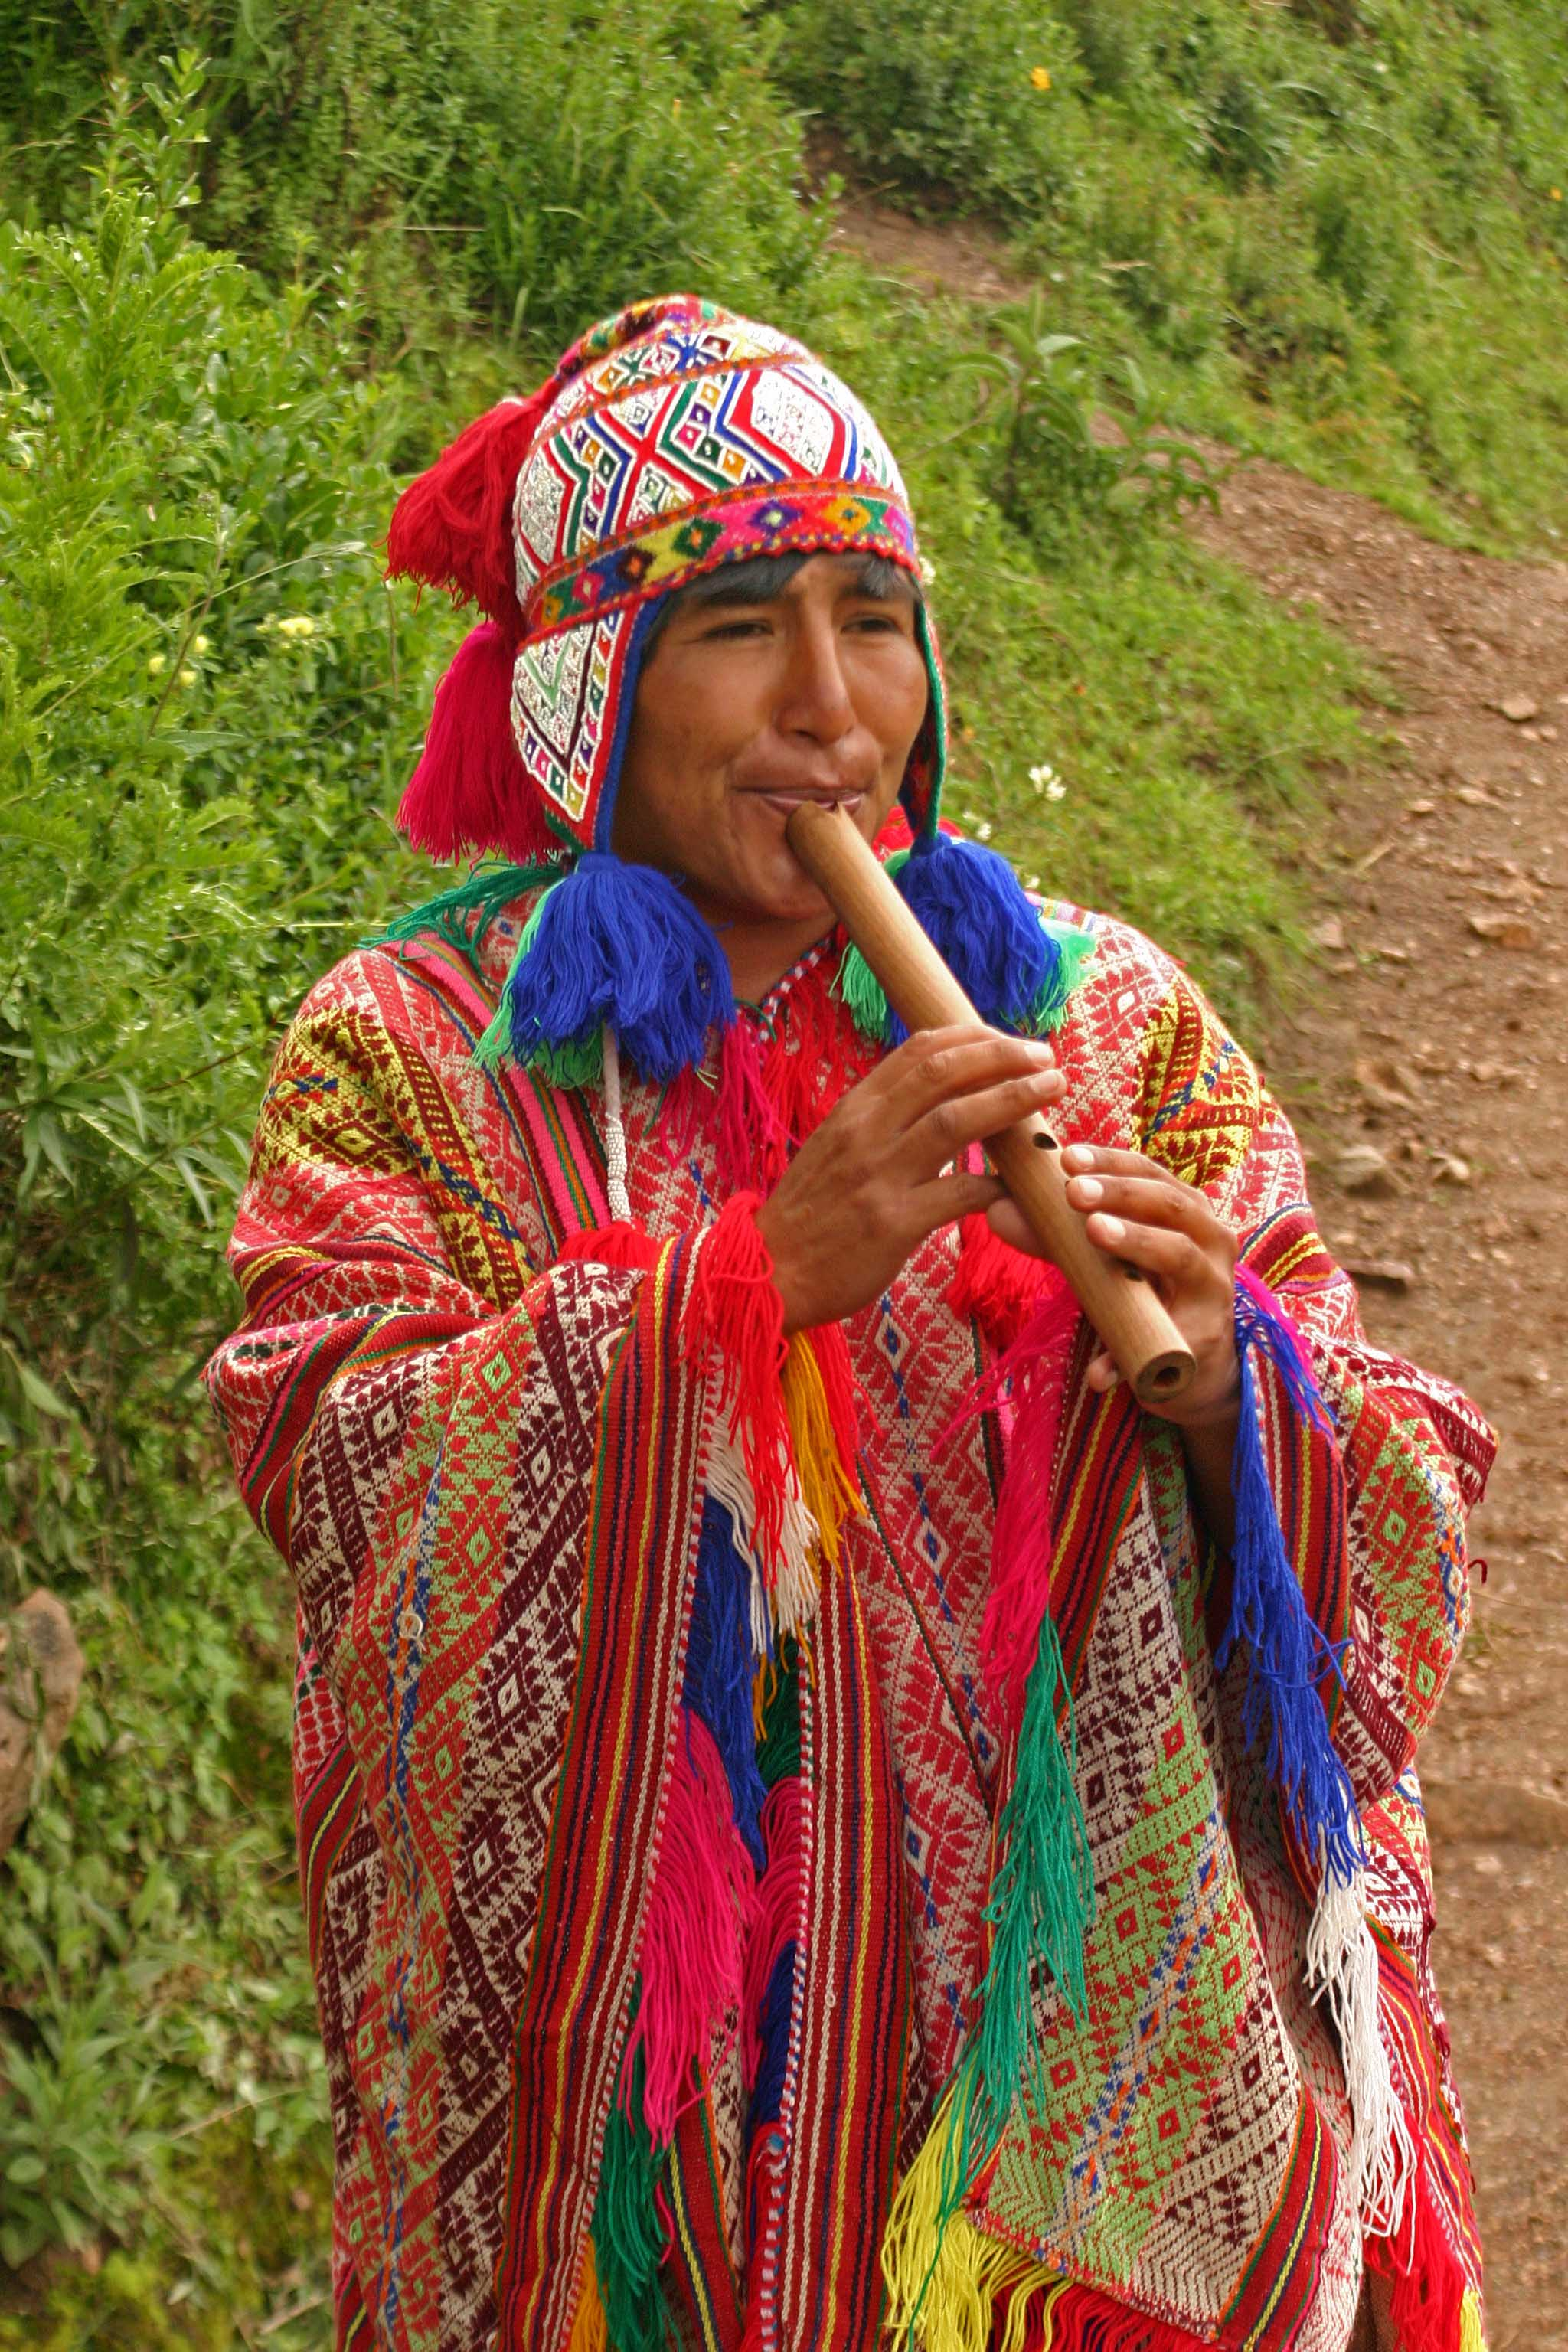 http://www.imagesofanthropology.com/images/Closeup_Andean_flute_player_near_the_Inca_ruins_of_Pisac_Peru_copy.jpg